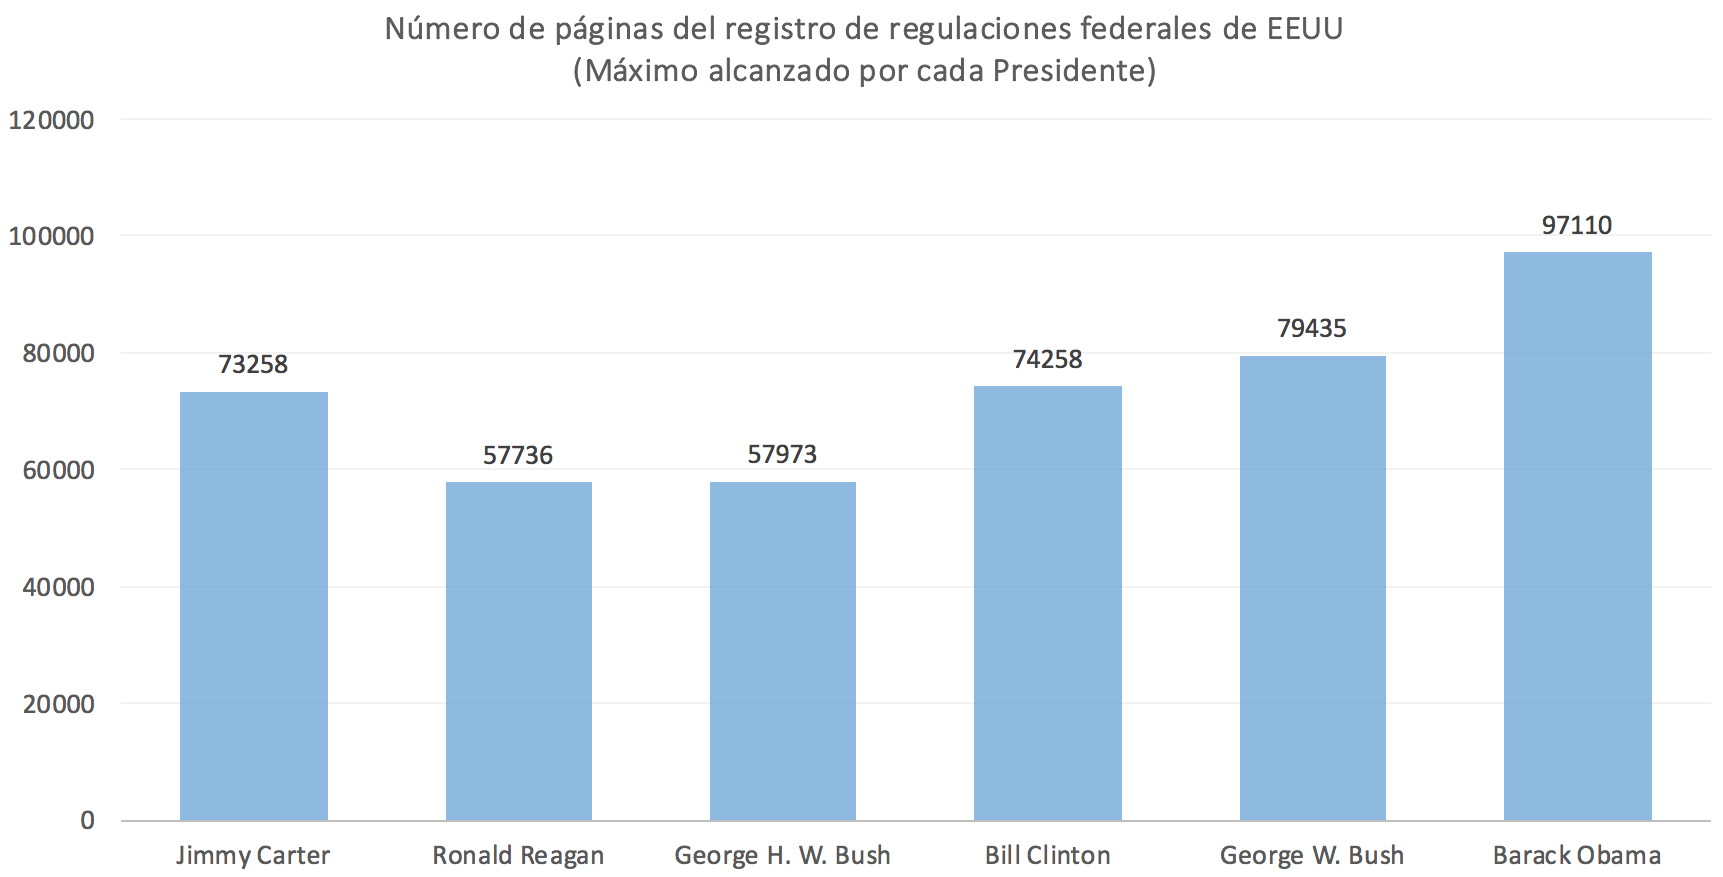 Regulaciones-EEUU.png